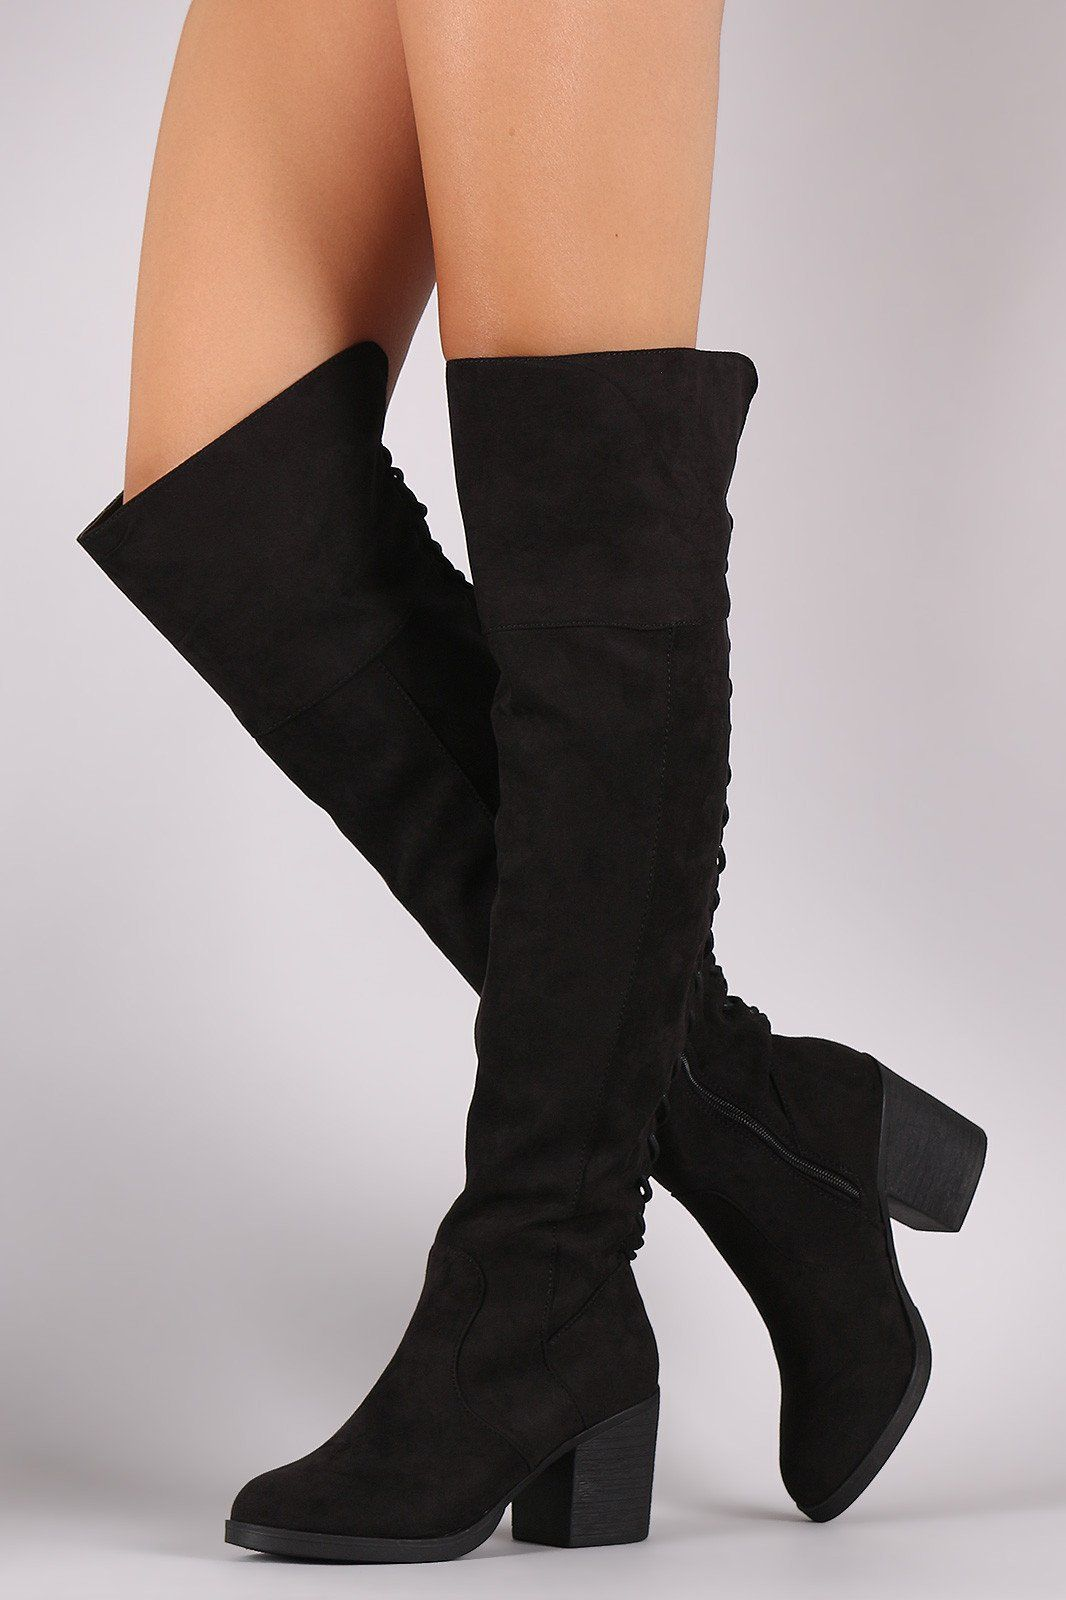 907bf6e661a2 Sensualshoesandclothingboutique - Bamboo Suede Back Lace Up OTK Boots